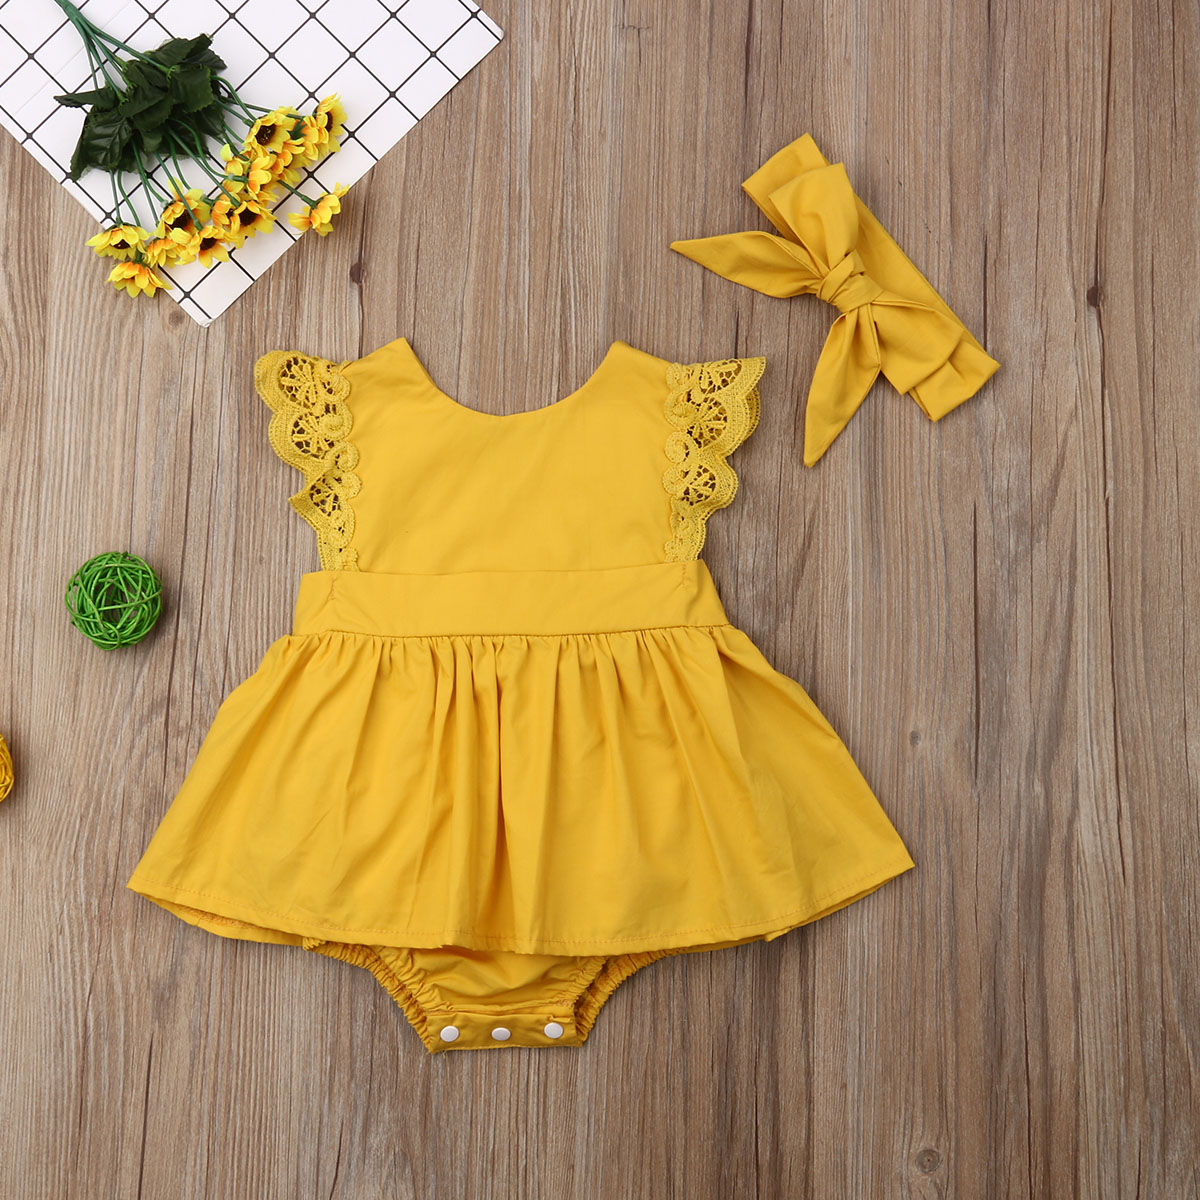 Emmababy 2019 Newborn Kid Baby Girls Lace Clothes Solid Jumpsuit Bodysuit Outfit Set